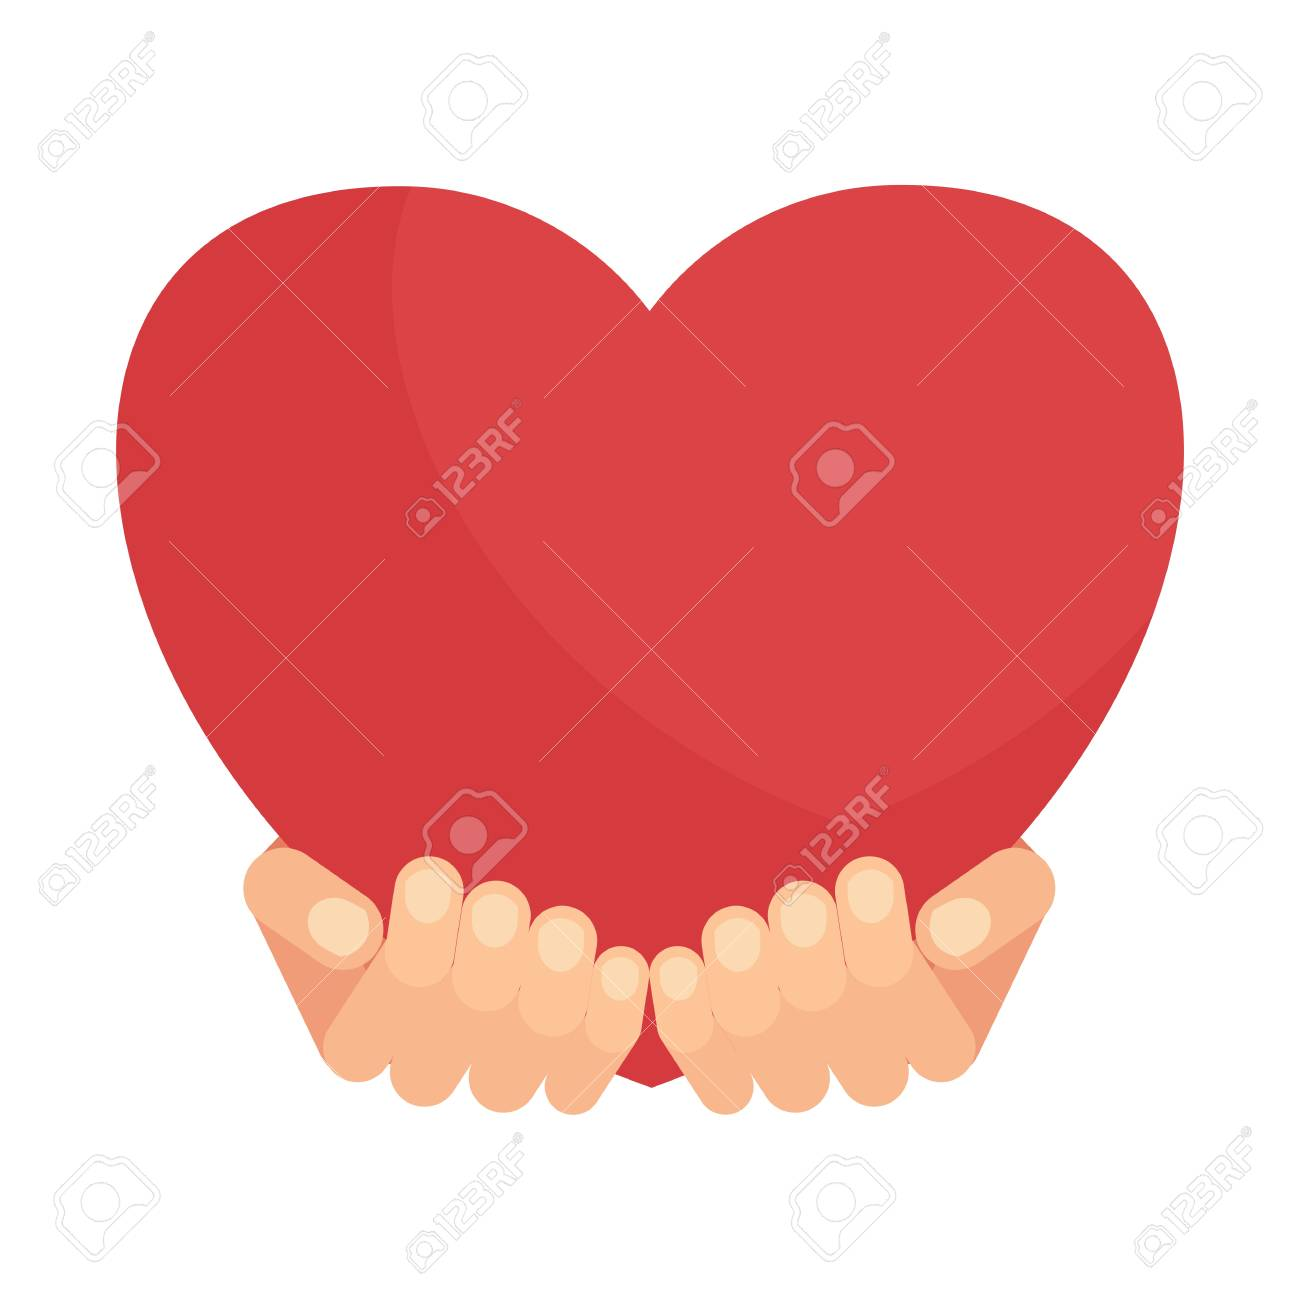 Hands holding big red heart symbol of passionate feeling of hands holding big red heart symbol of passionate feeling of love postcard valentines day buycottarizona Image collections